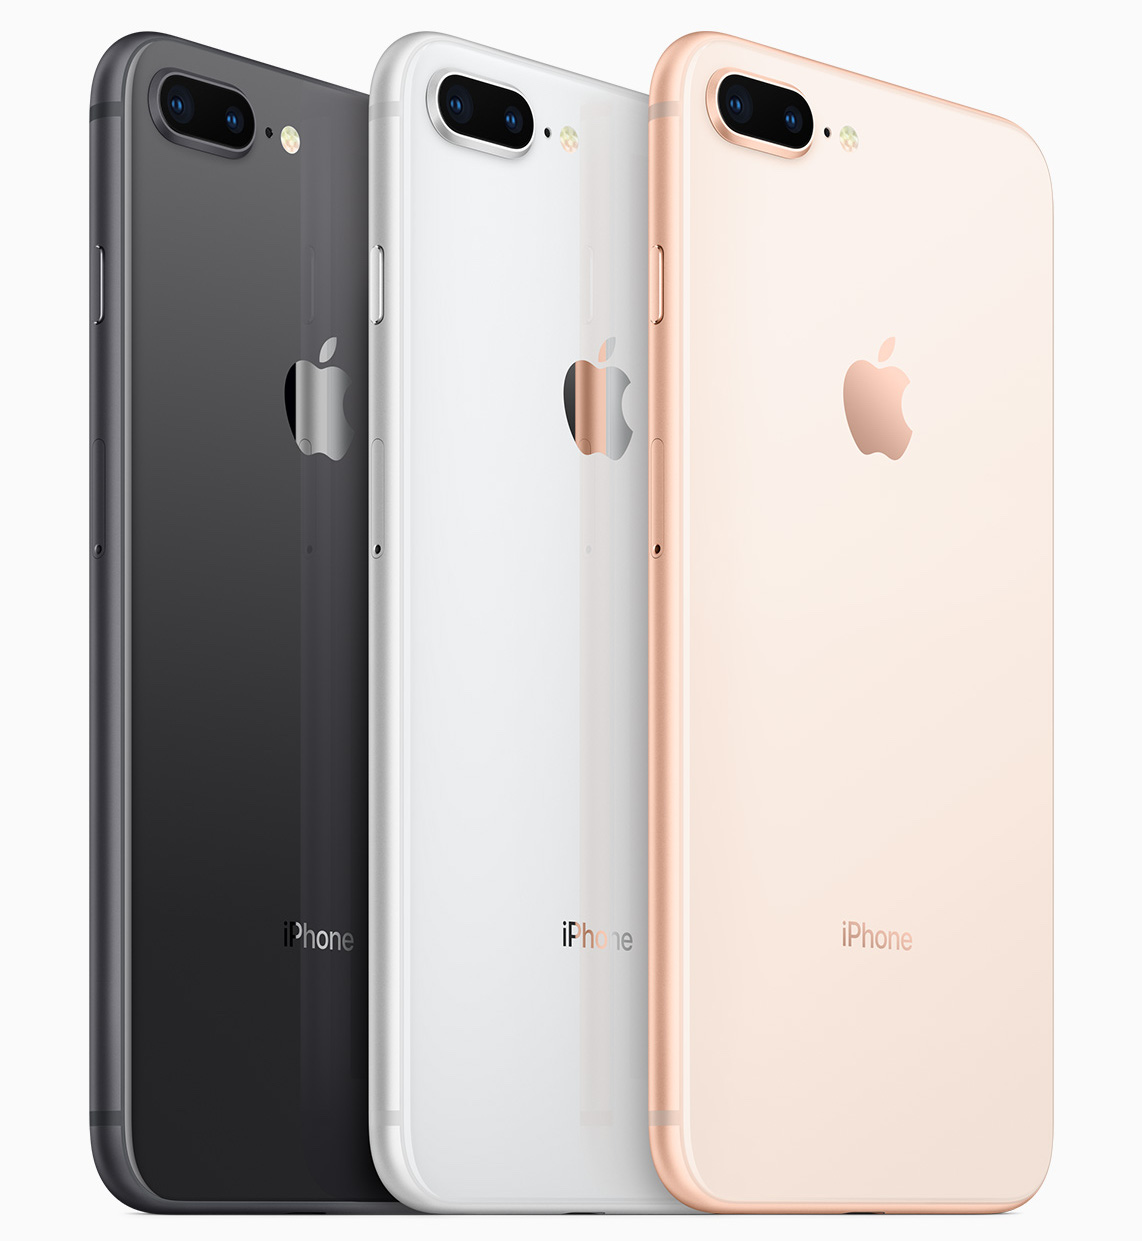 half off 08220 68a59 Apple Reveals 'iPhone 8' and 'iPhone 8 Plus' With Glass Bodies and ...